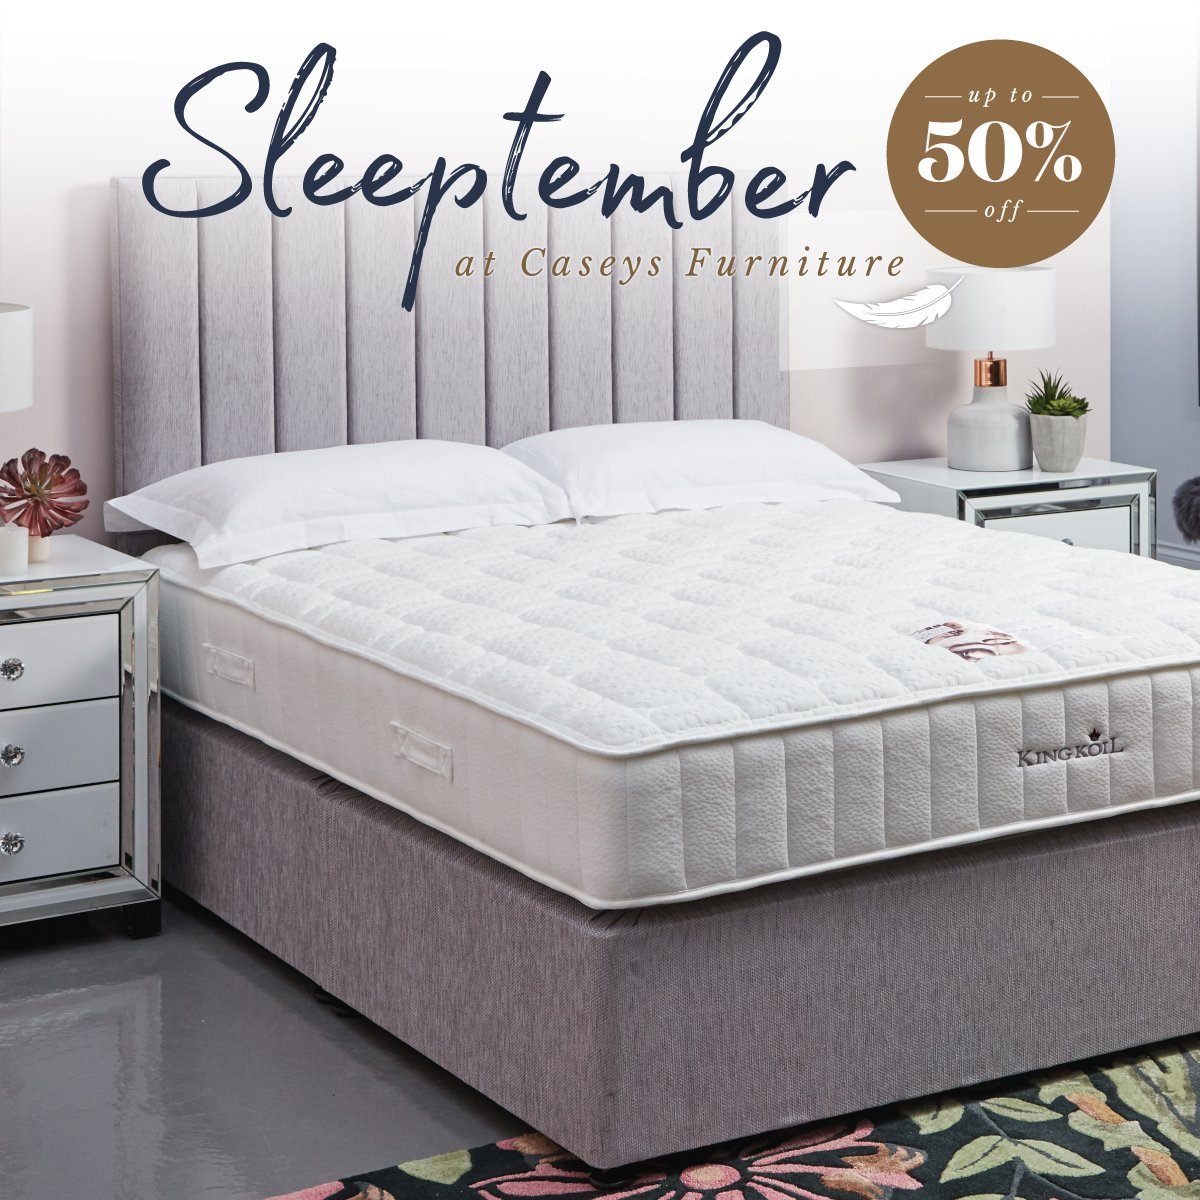 When To Buy A New Mattress Caseys Furniture On Twitter